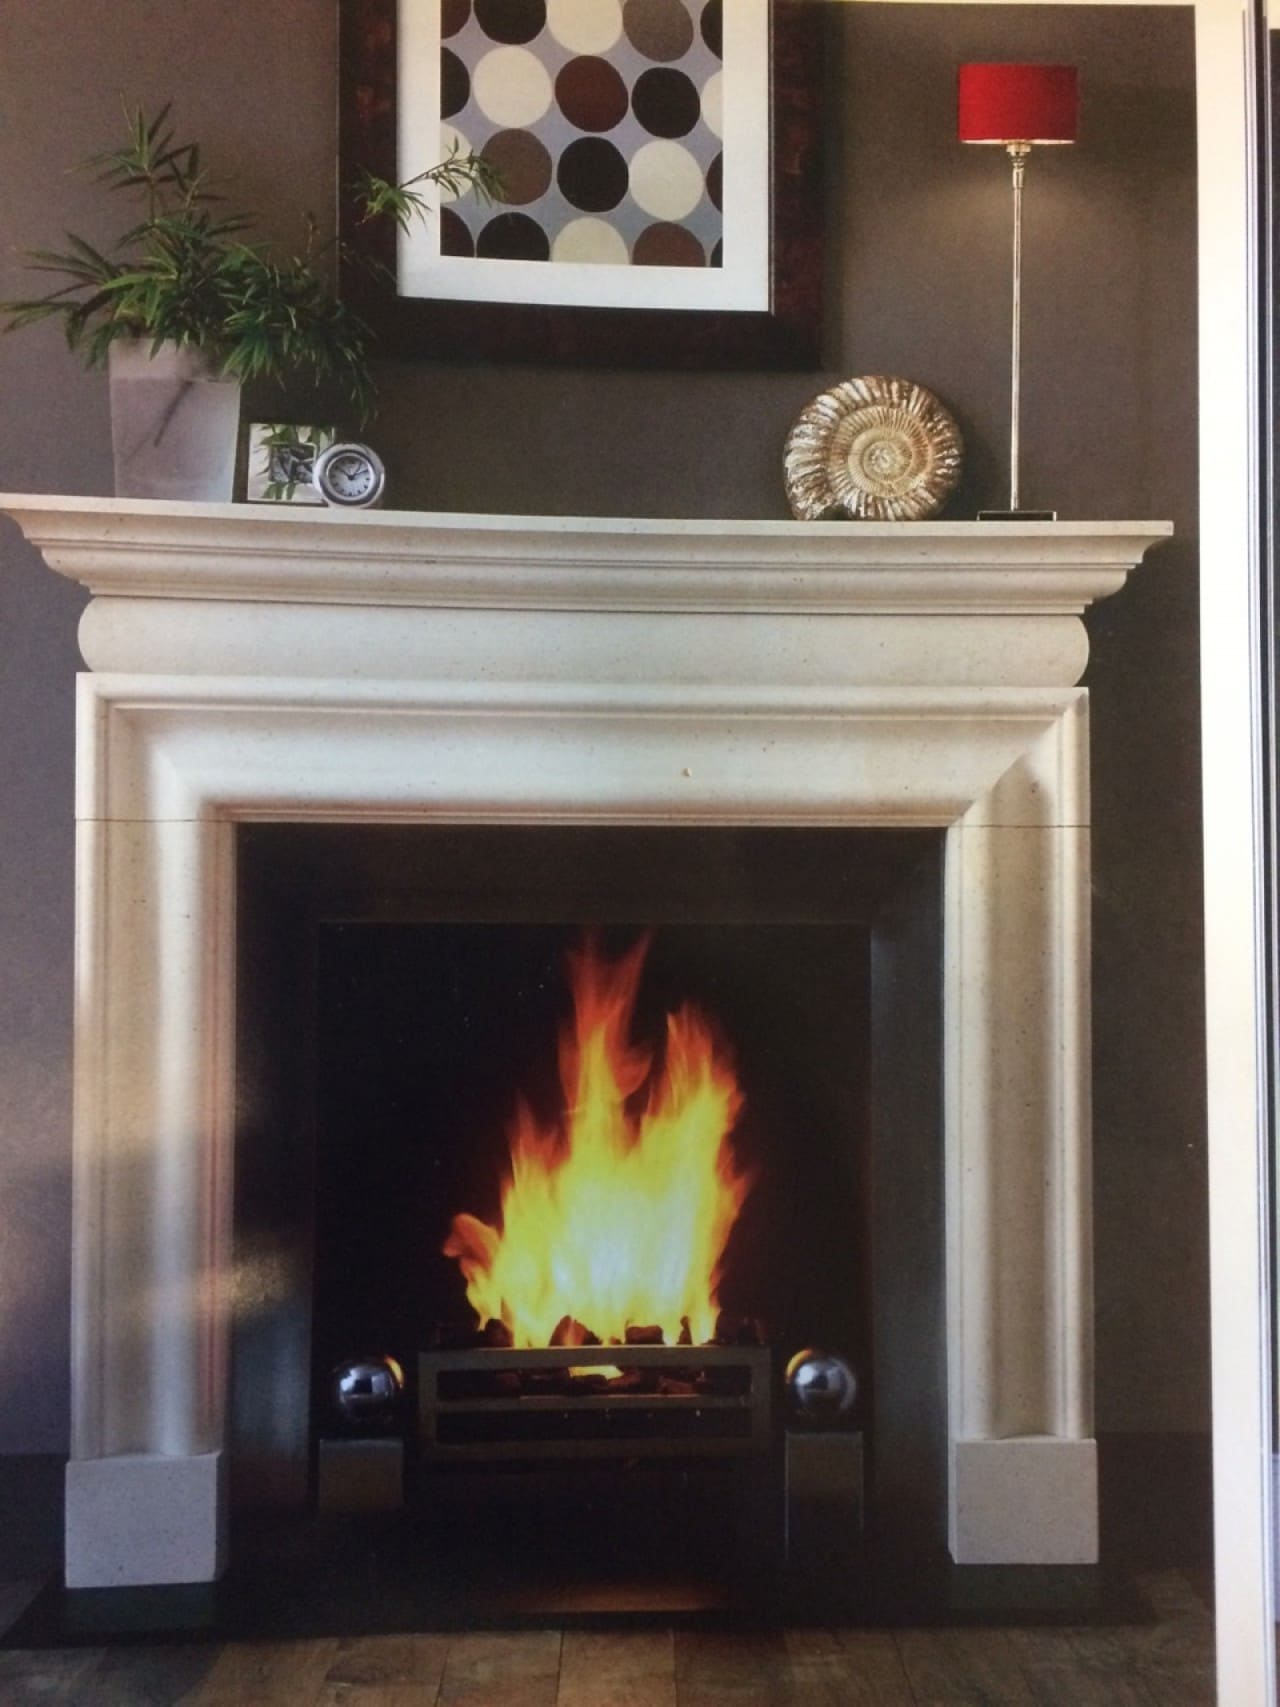 A tile fireplace with a DPD system or a traditional tile fireplace?